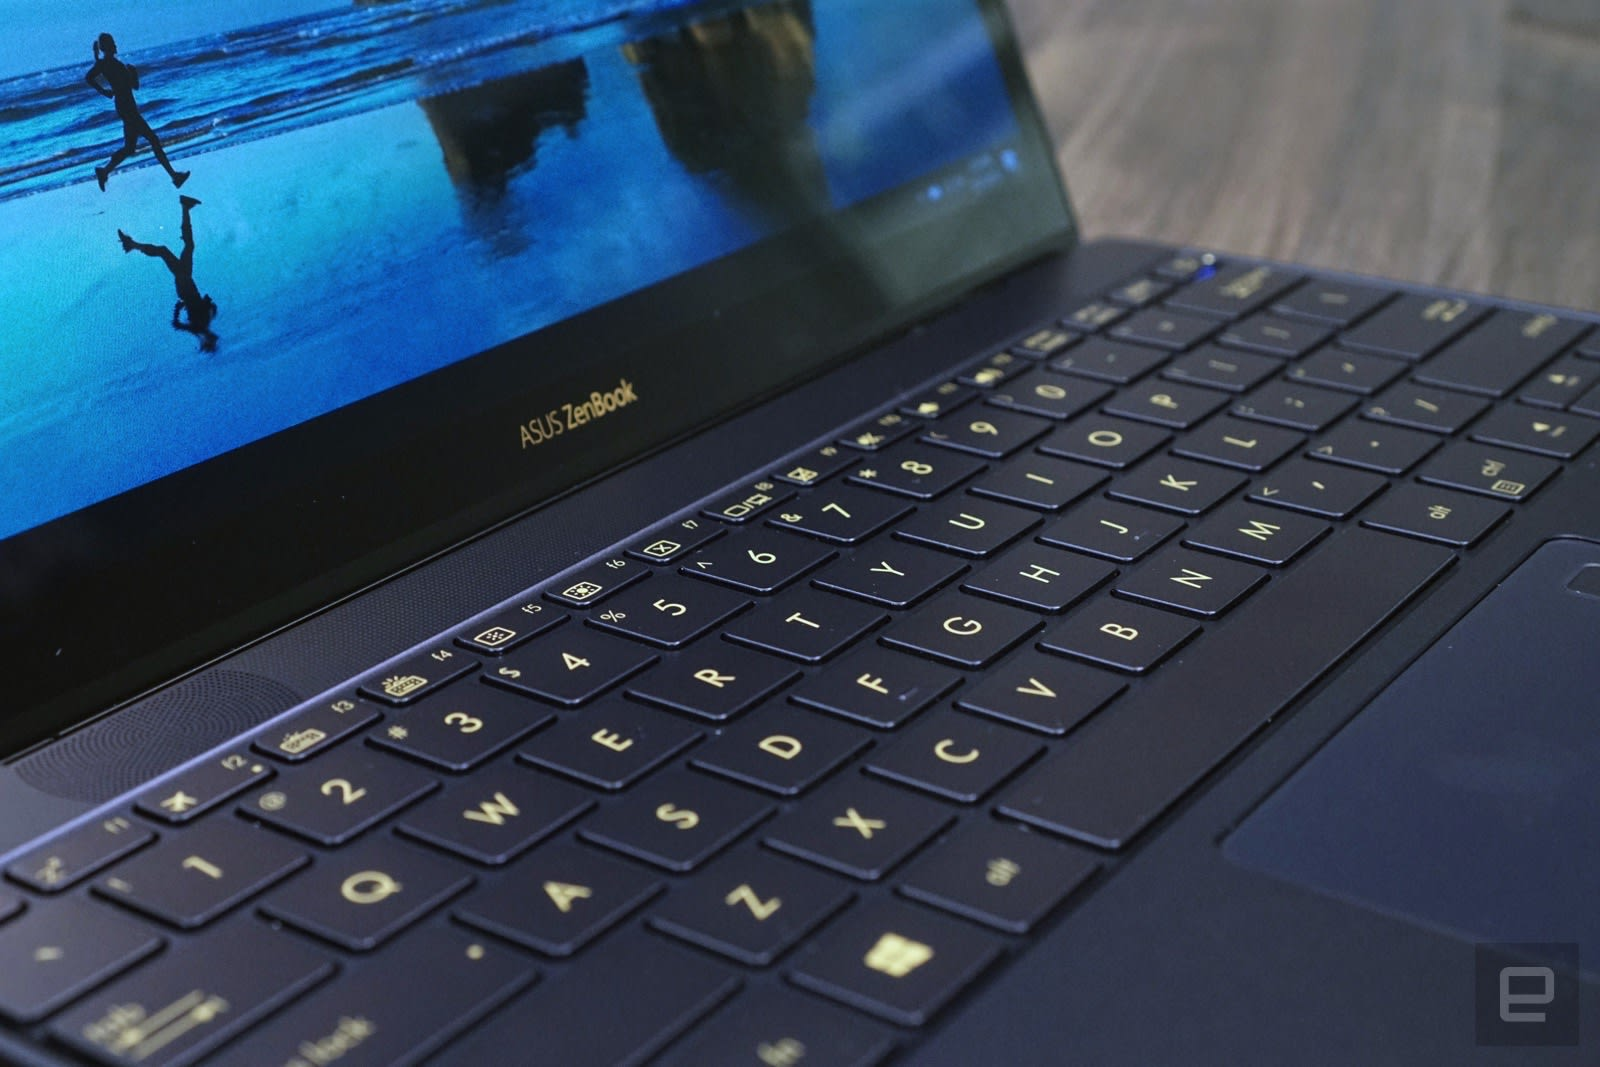 ASUS ZenBook 3 review: A powerful MacBook competitor with issues